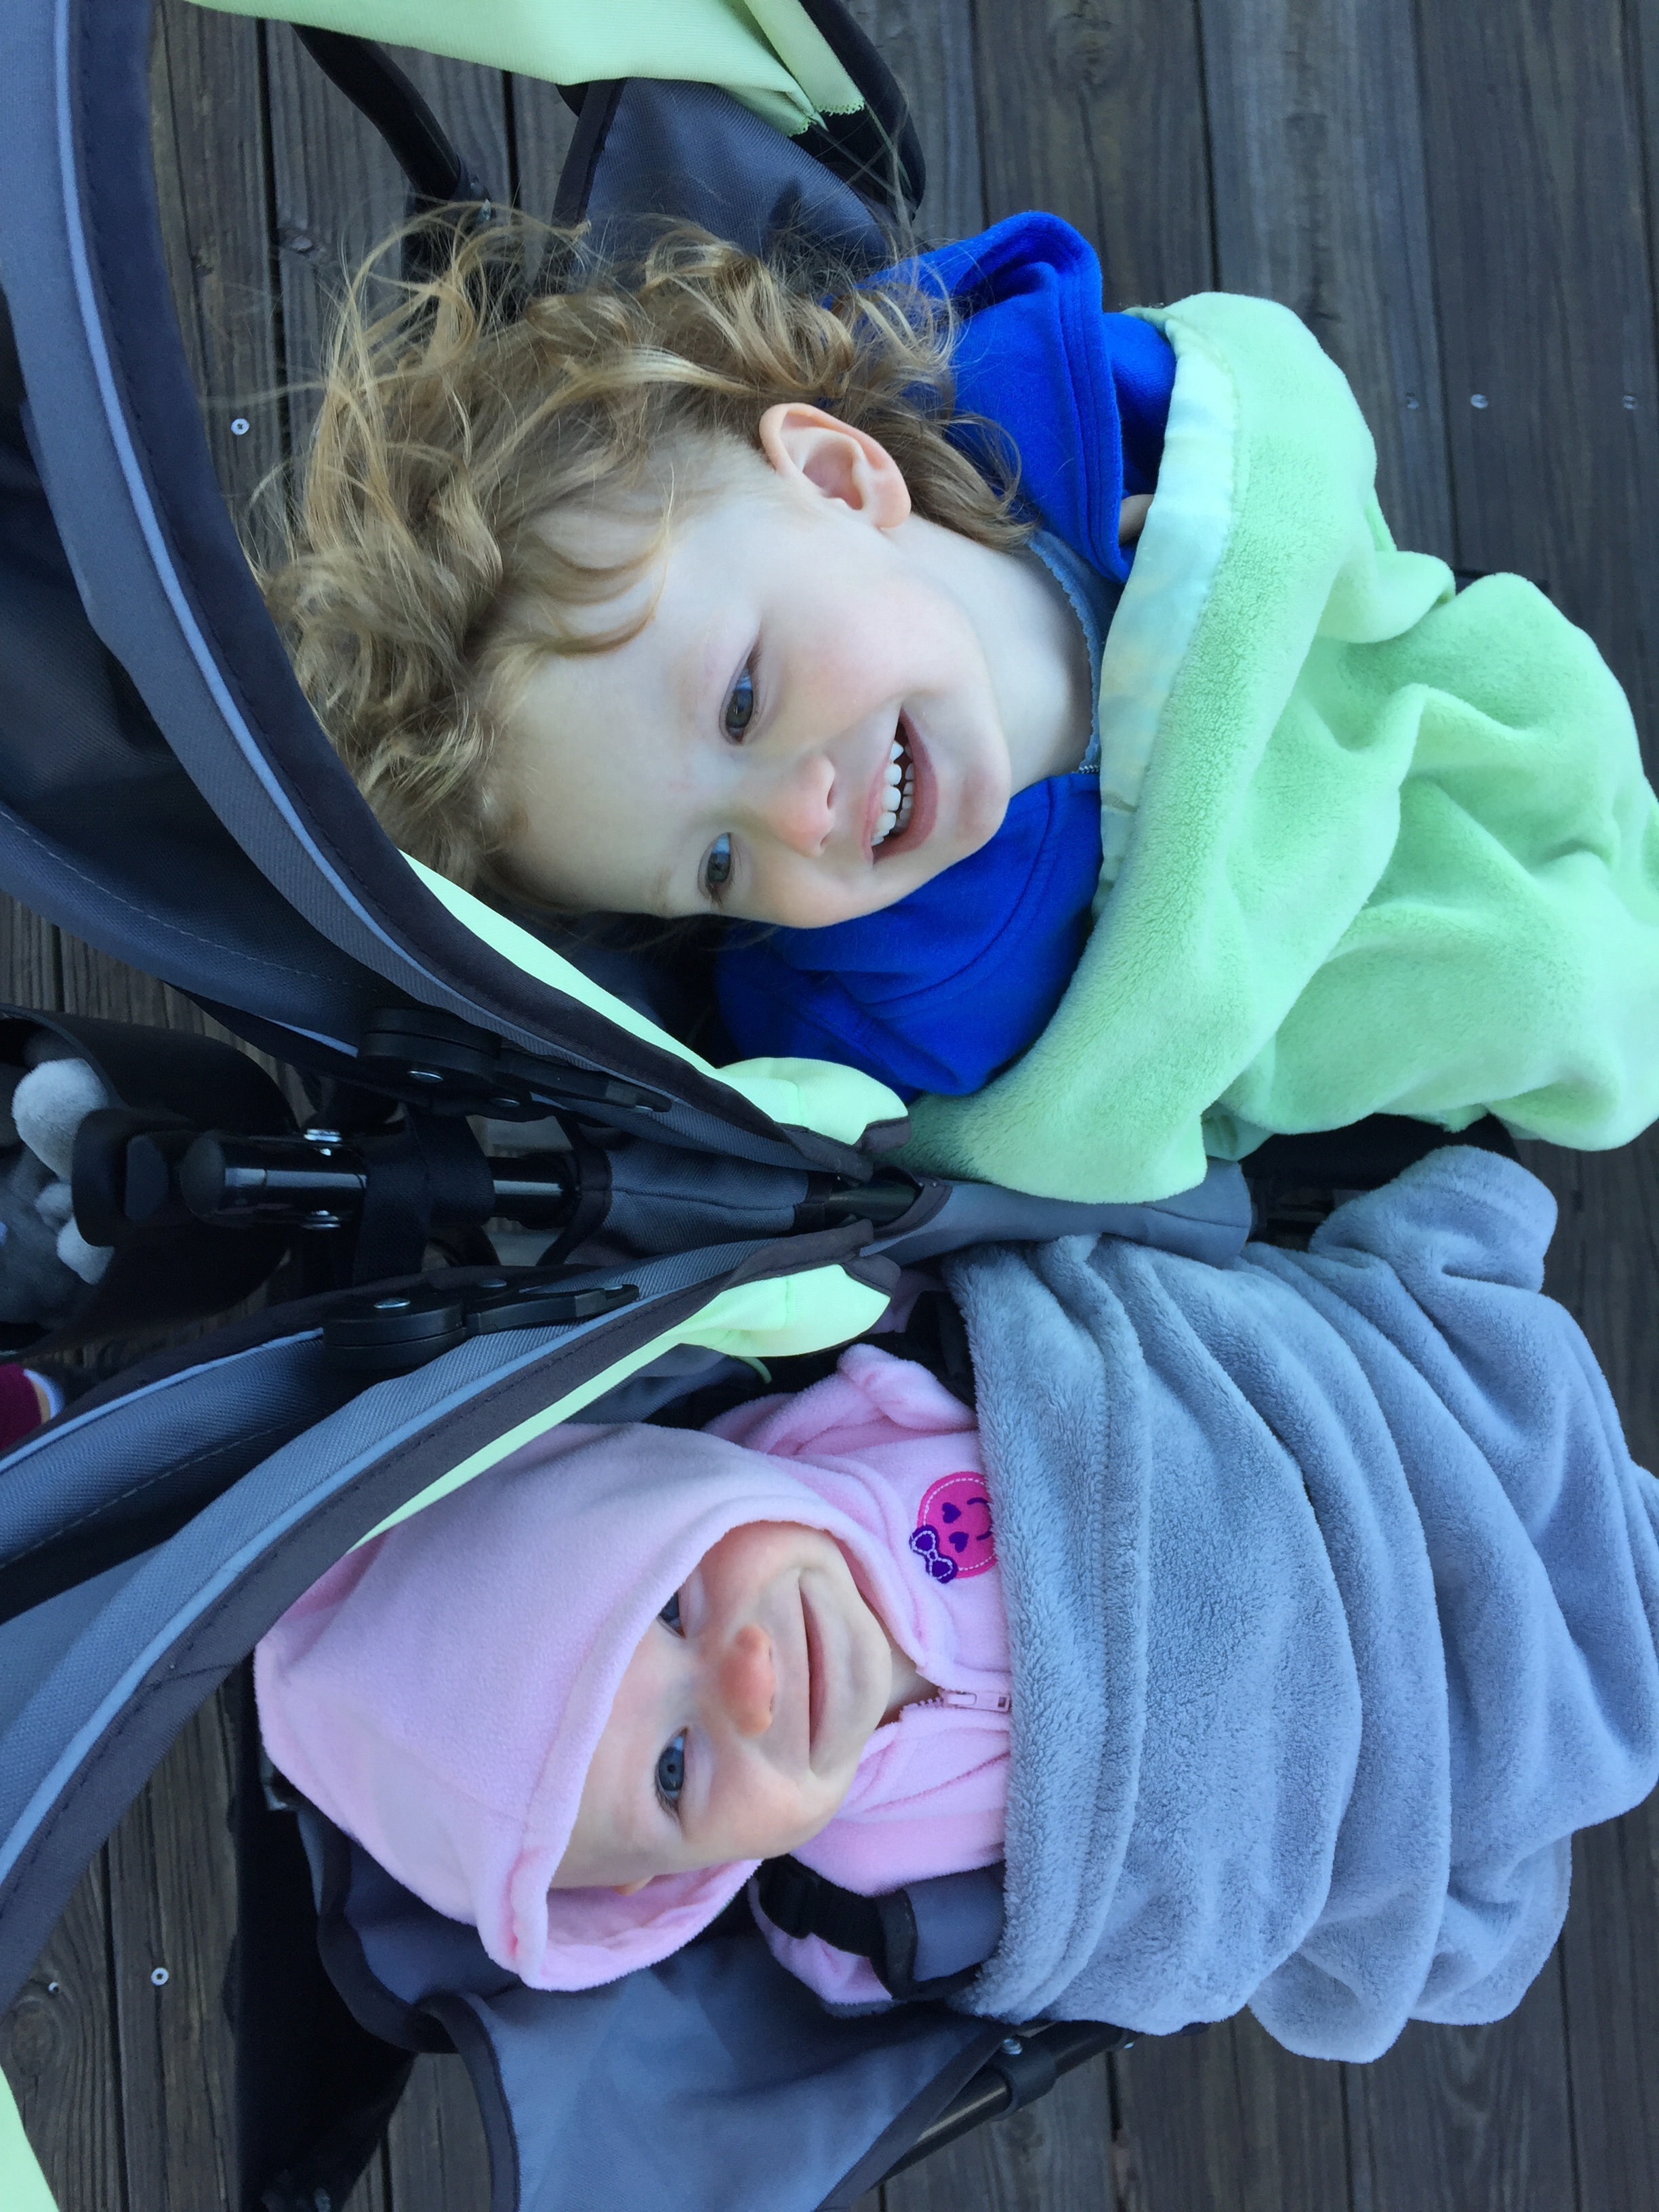 Bundled up for our morning walk. It's getting cold in Wilmington, NC. Time to head south soon!